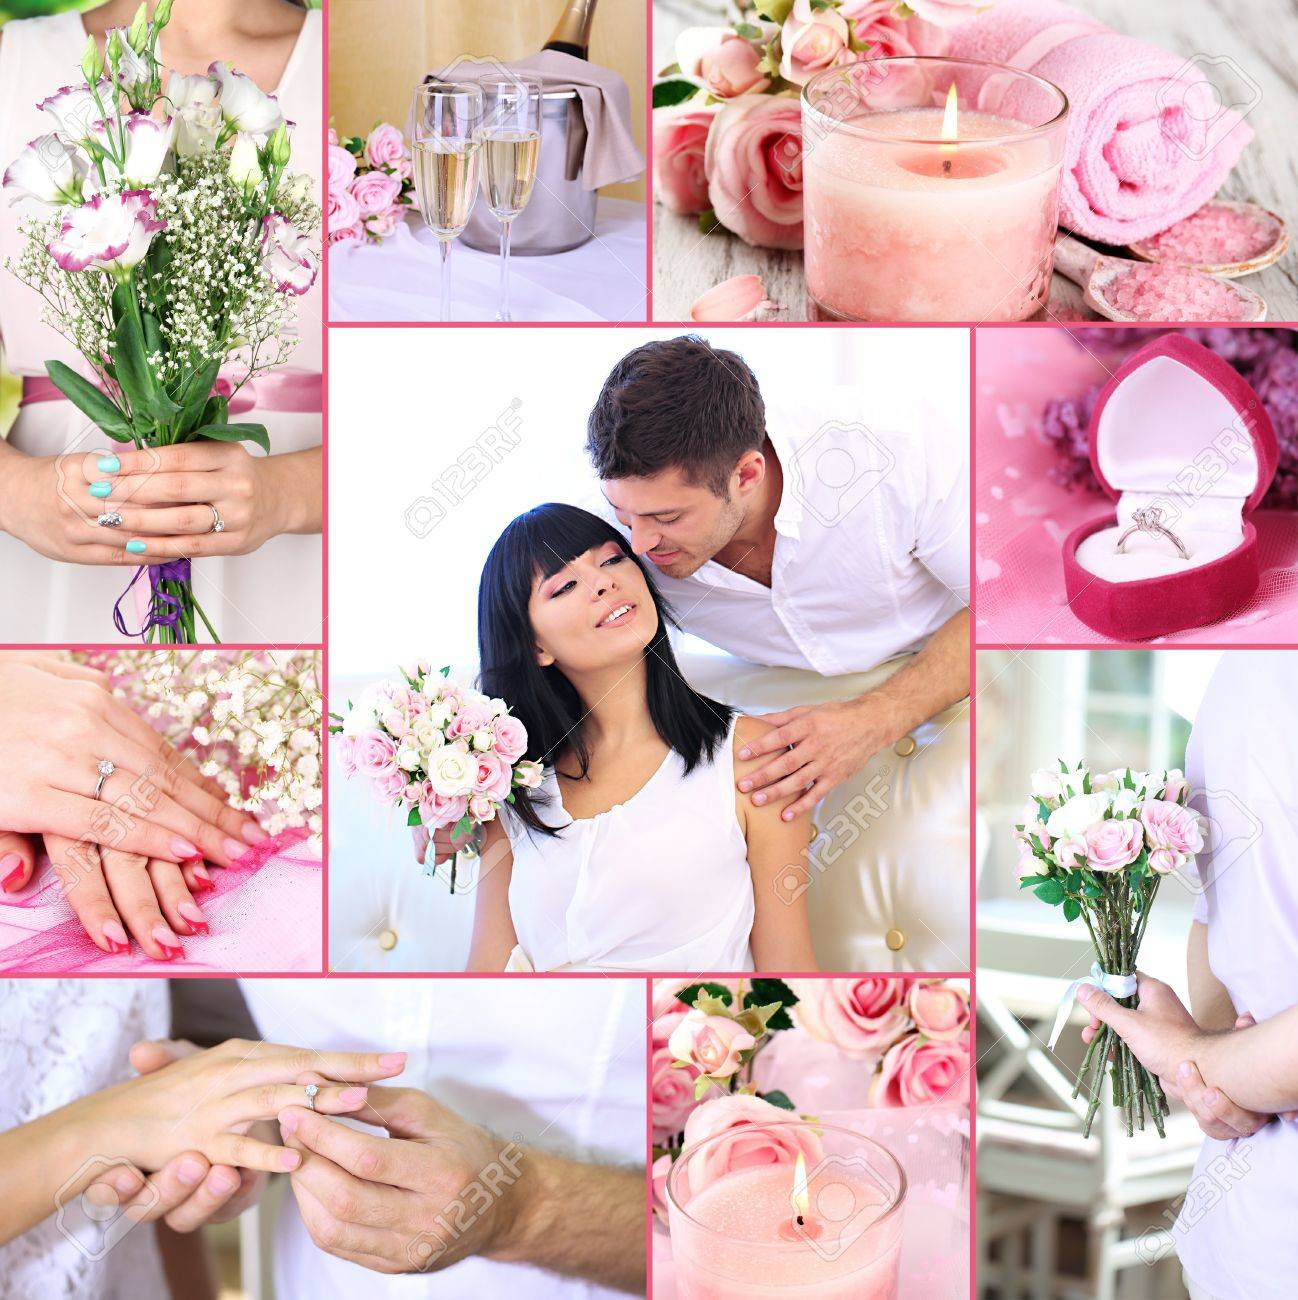 Collage Of Wedding Stock Photo, Picture And Royalty Free Image ...